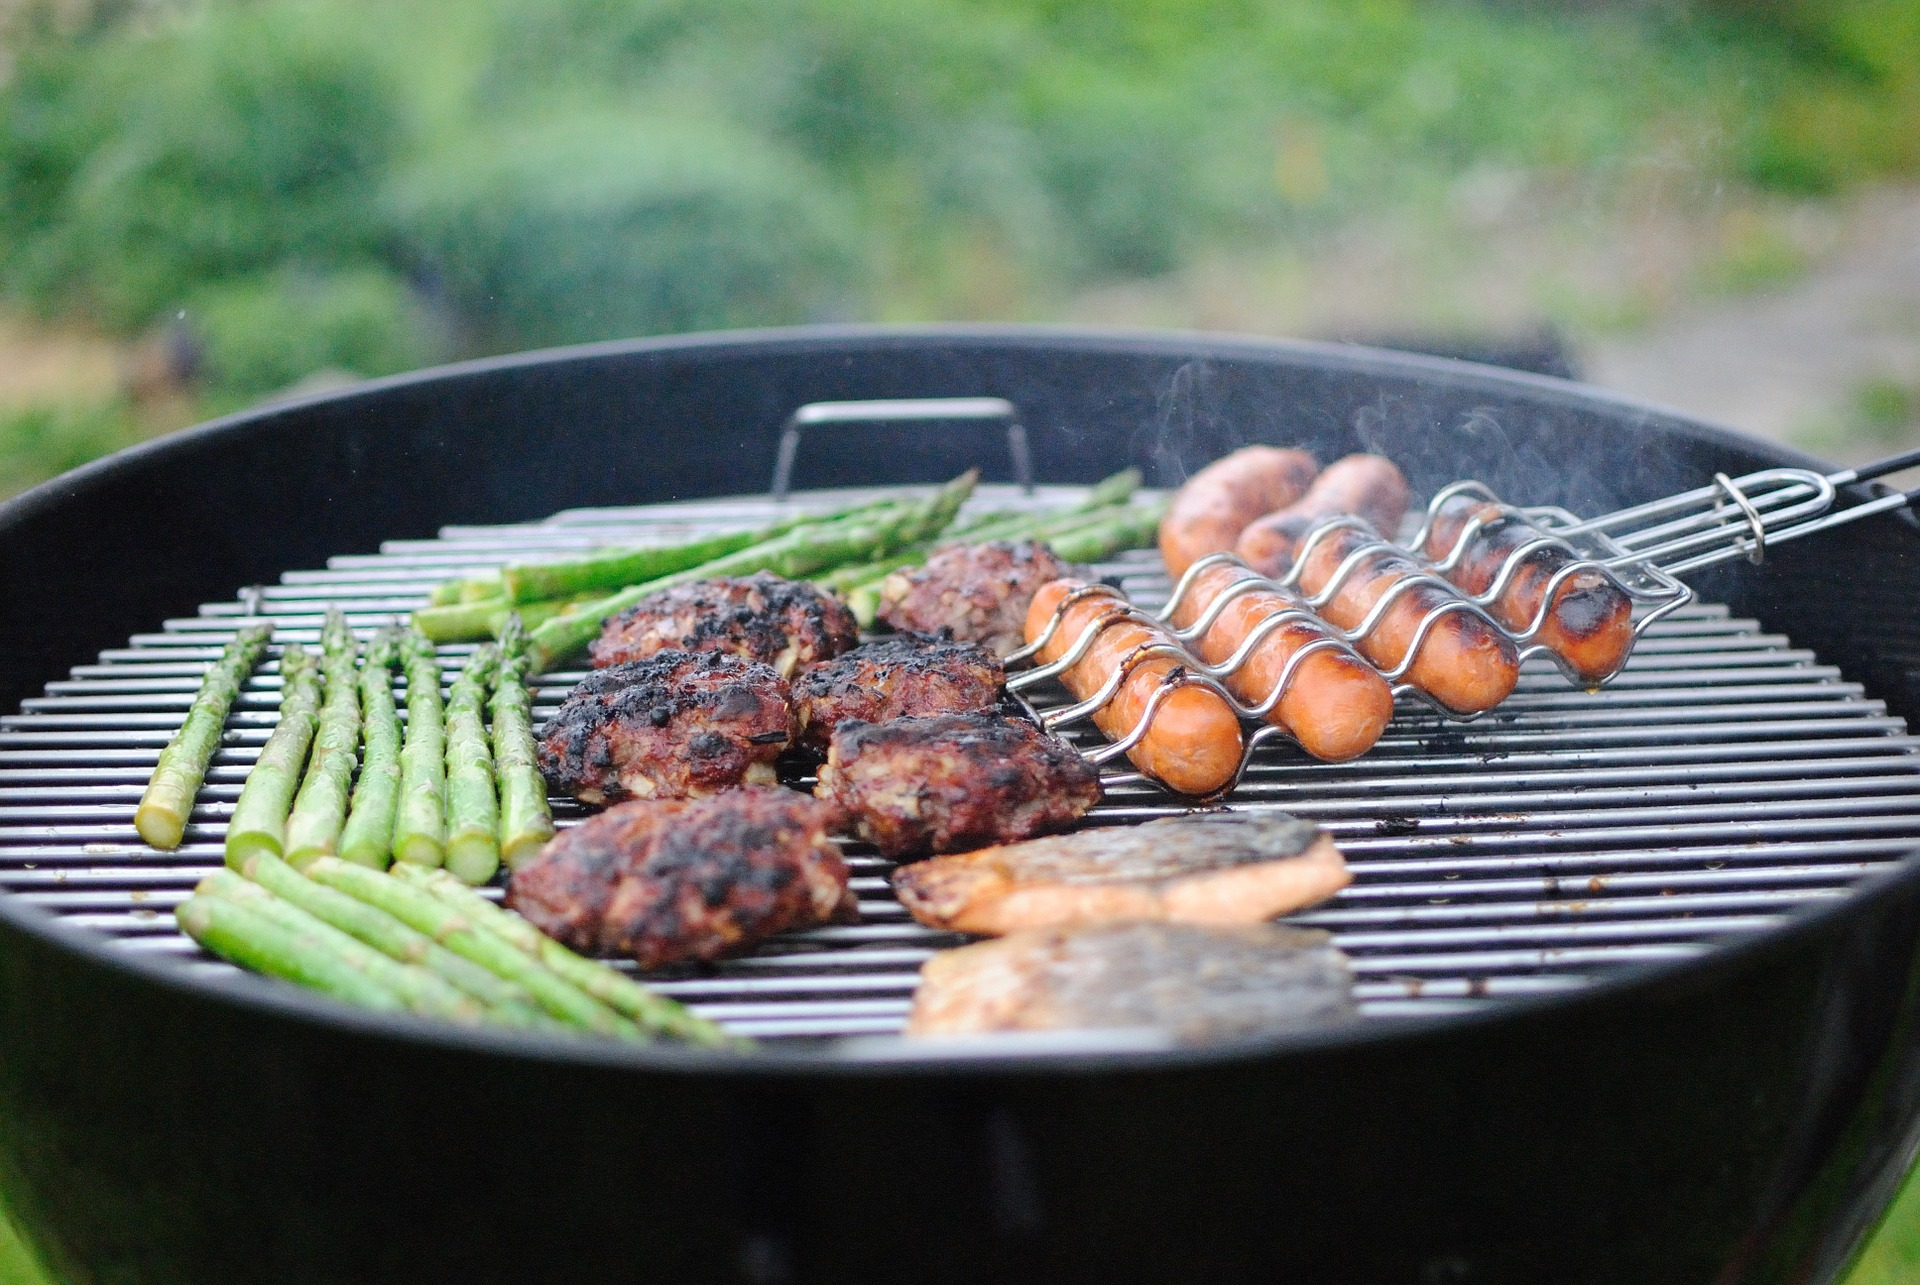 Grill Safety Tips for Your Summer Cookout